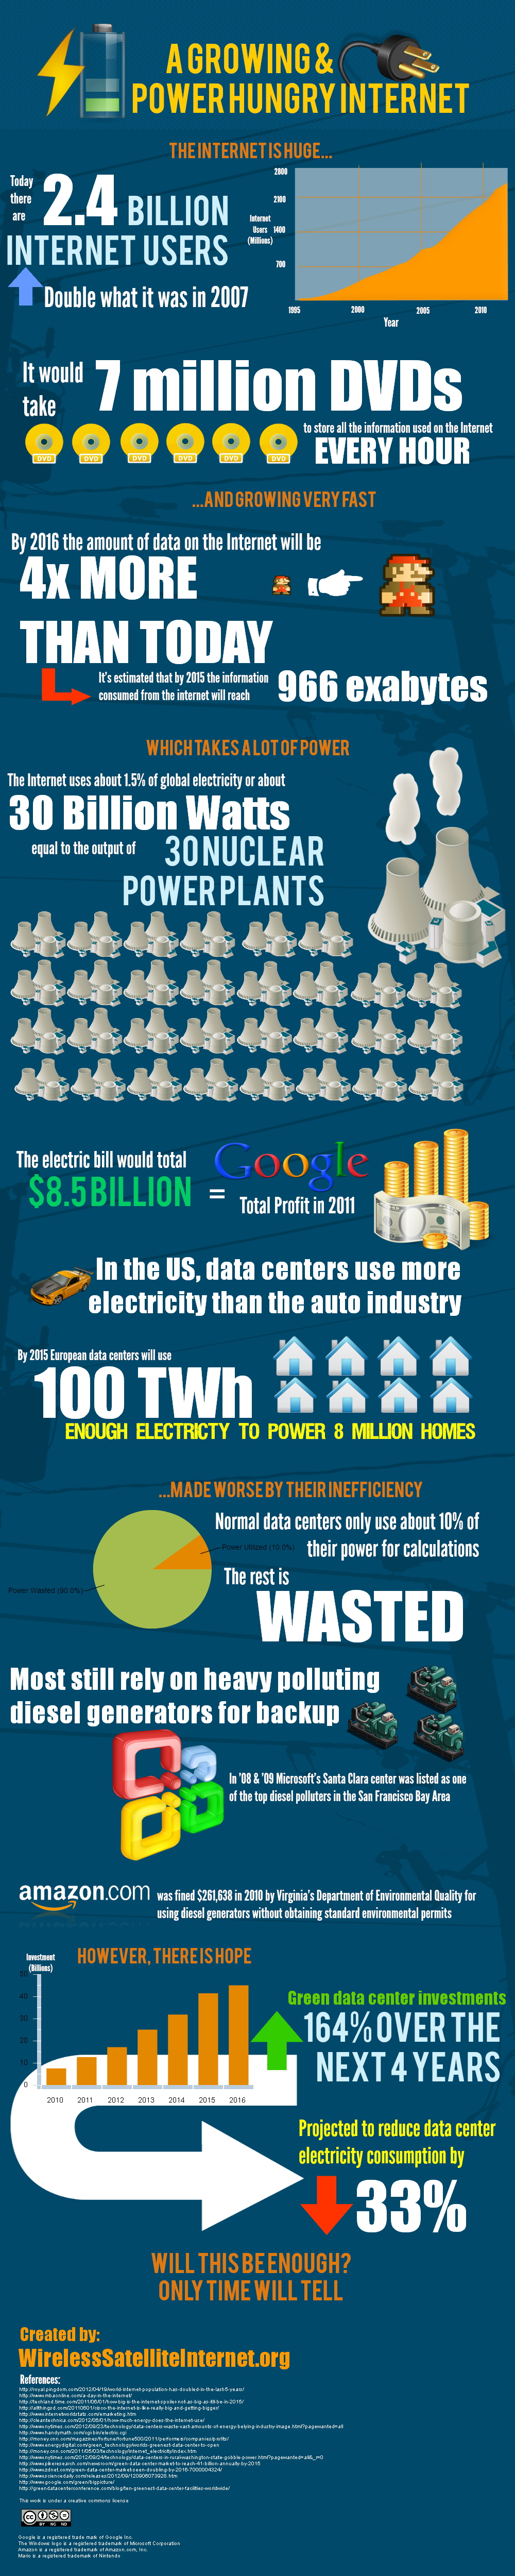 A growing and power hungry internet